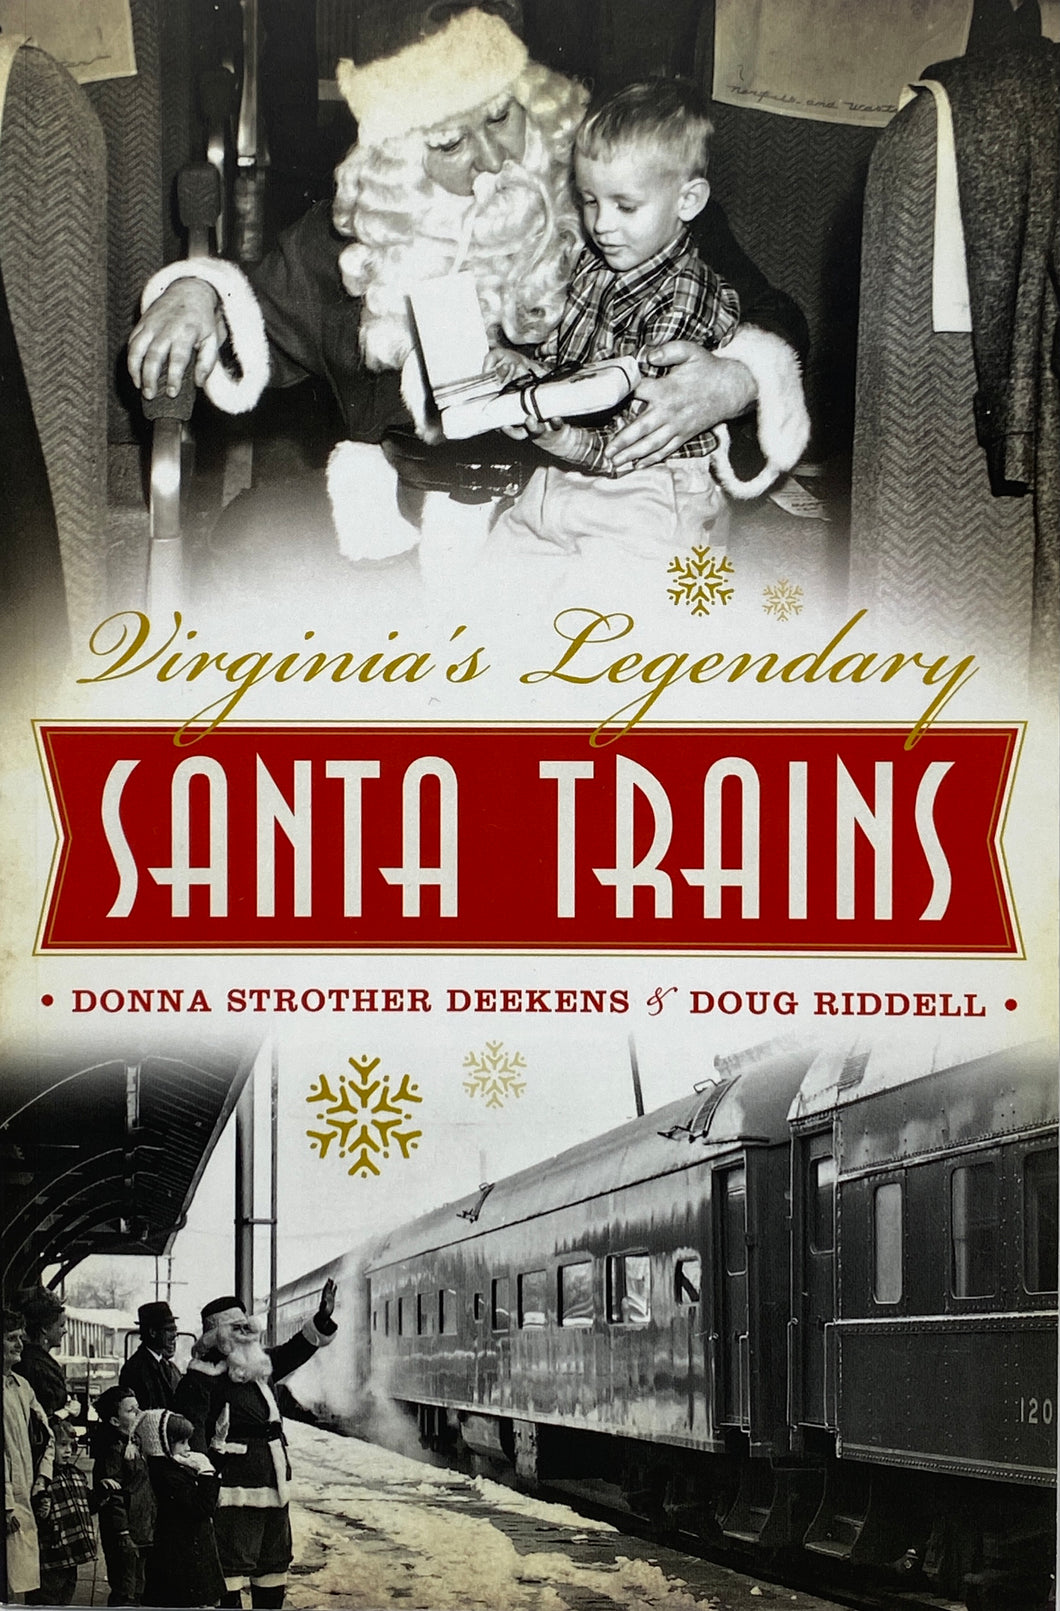 Virginia's Legendary Santa Trains by Donna Strother Deekens & Doug Riddell